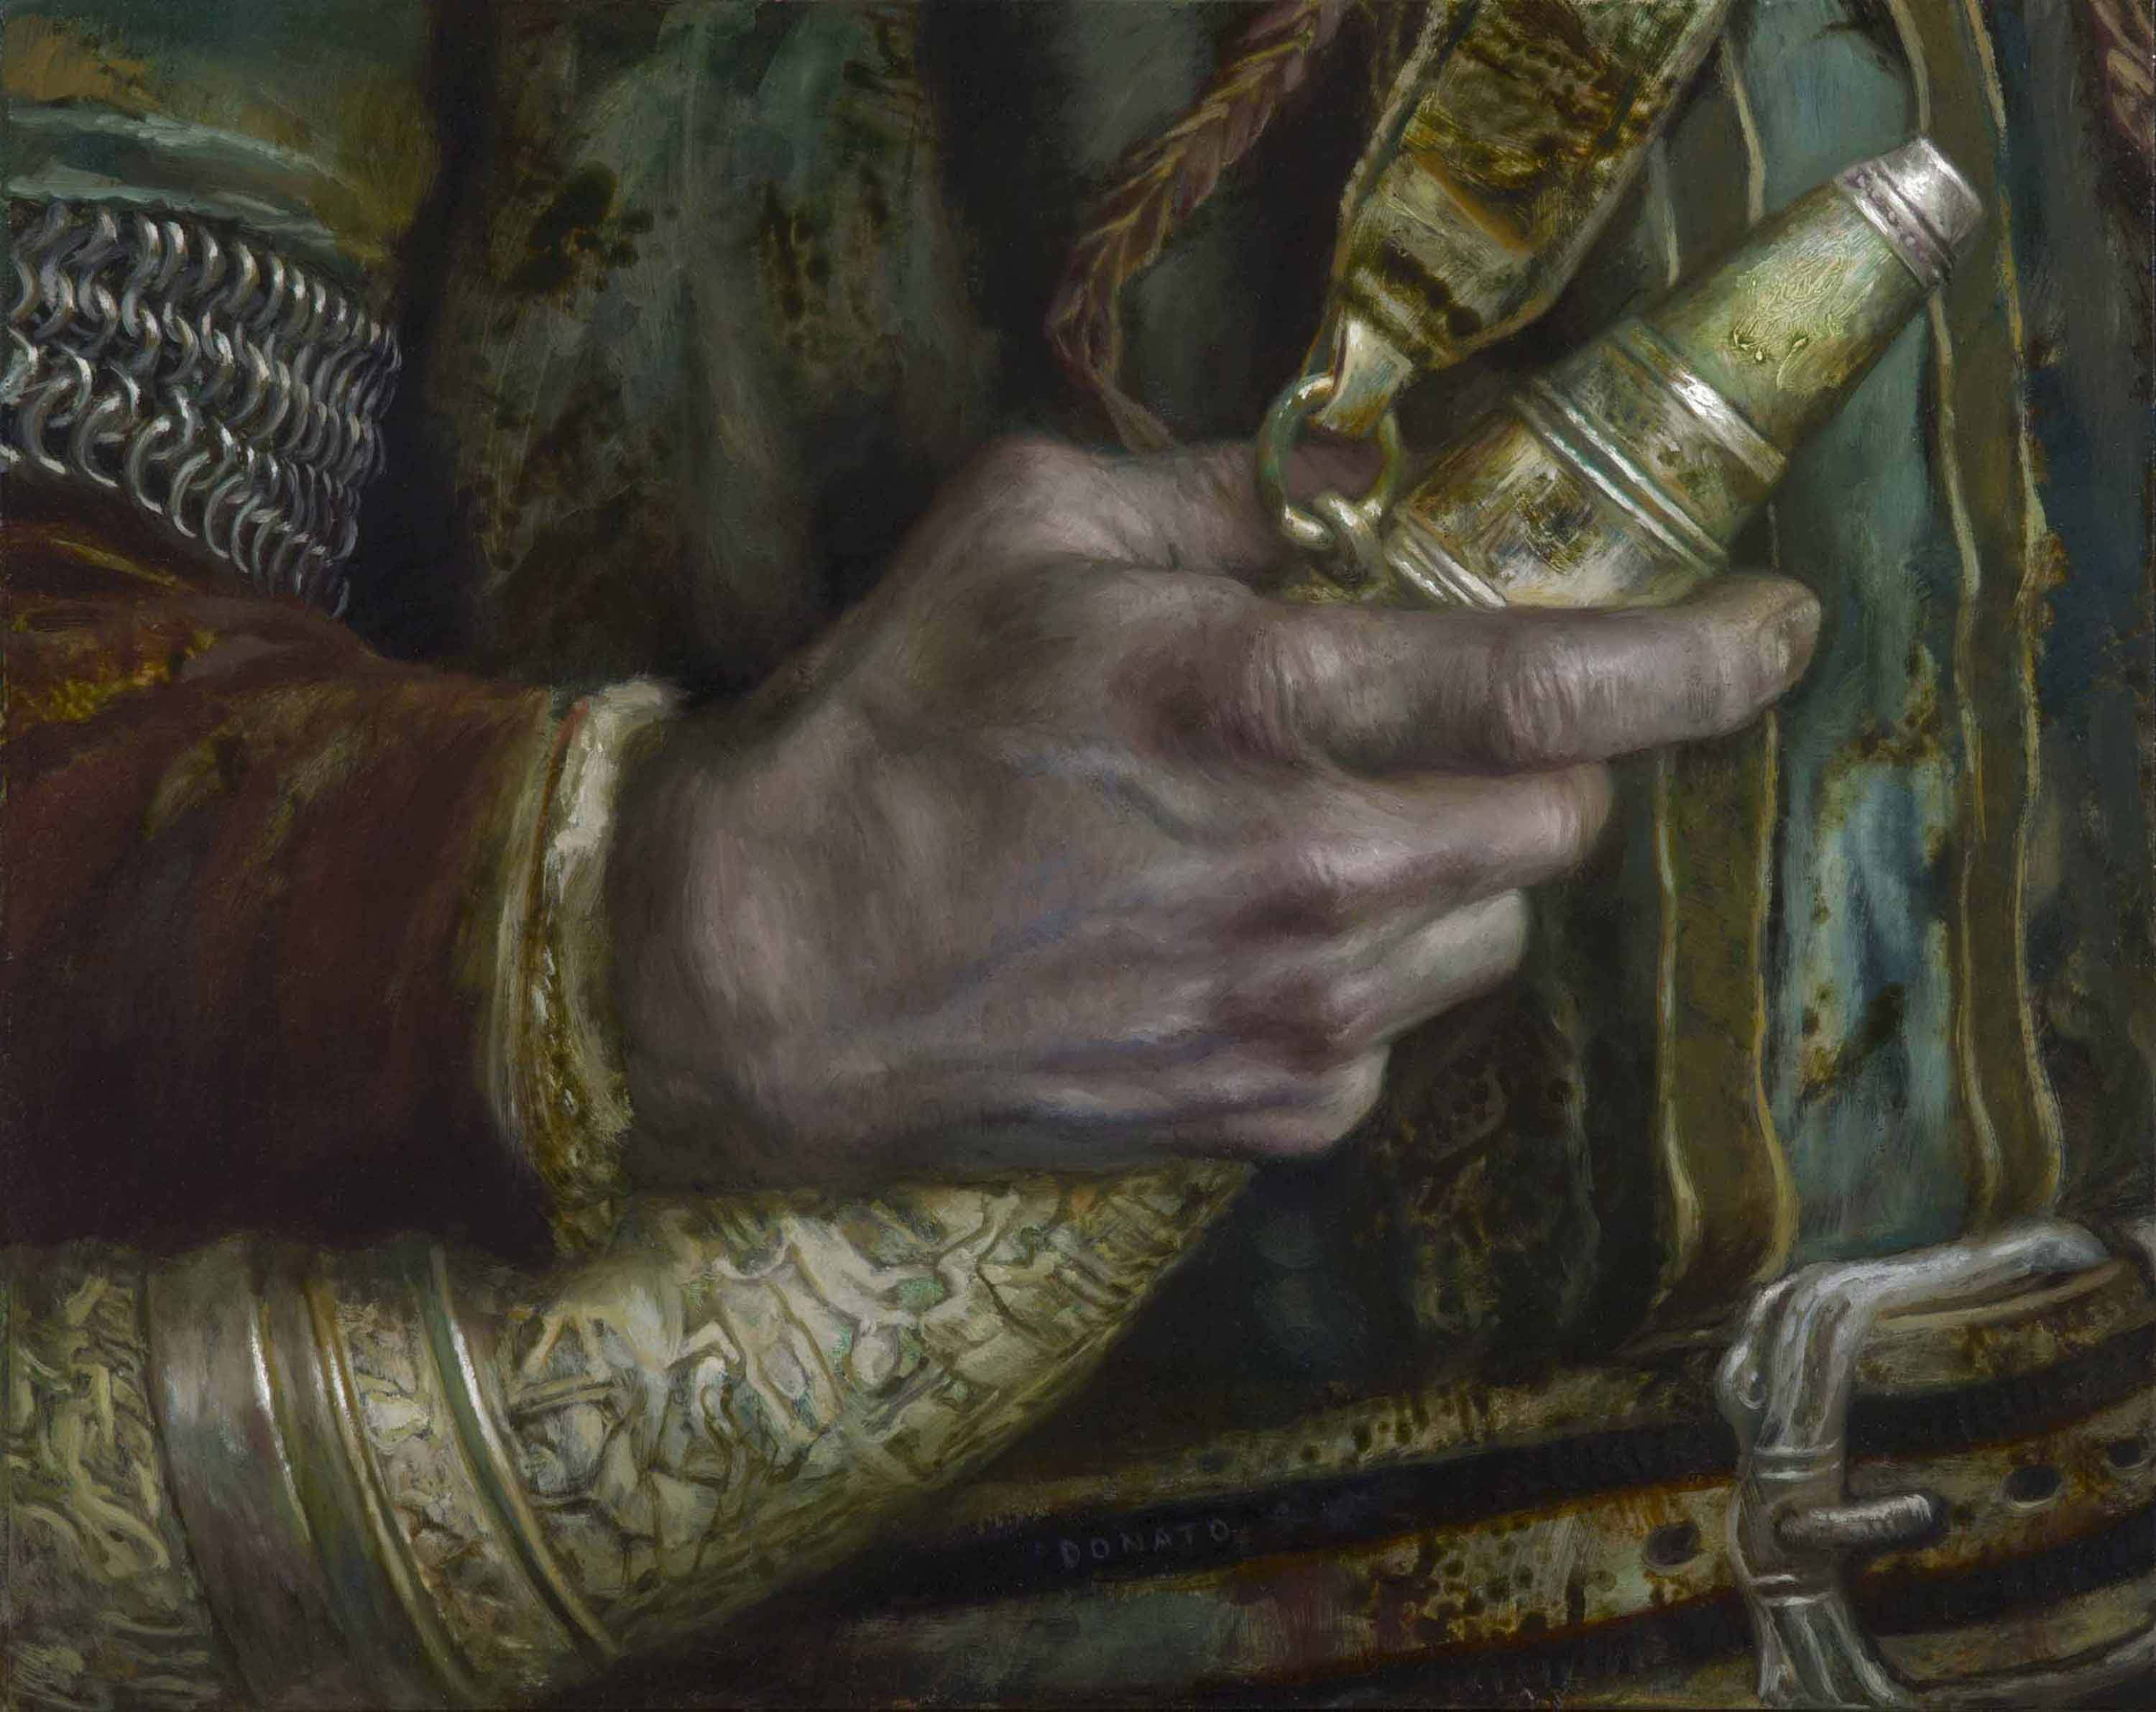 "The Horn of Gondor 11"" x 14""  Oil on Panel  2015 collection of David Broyles"